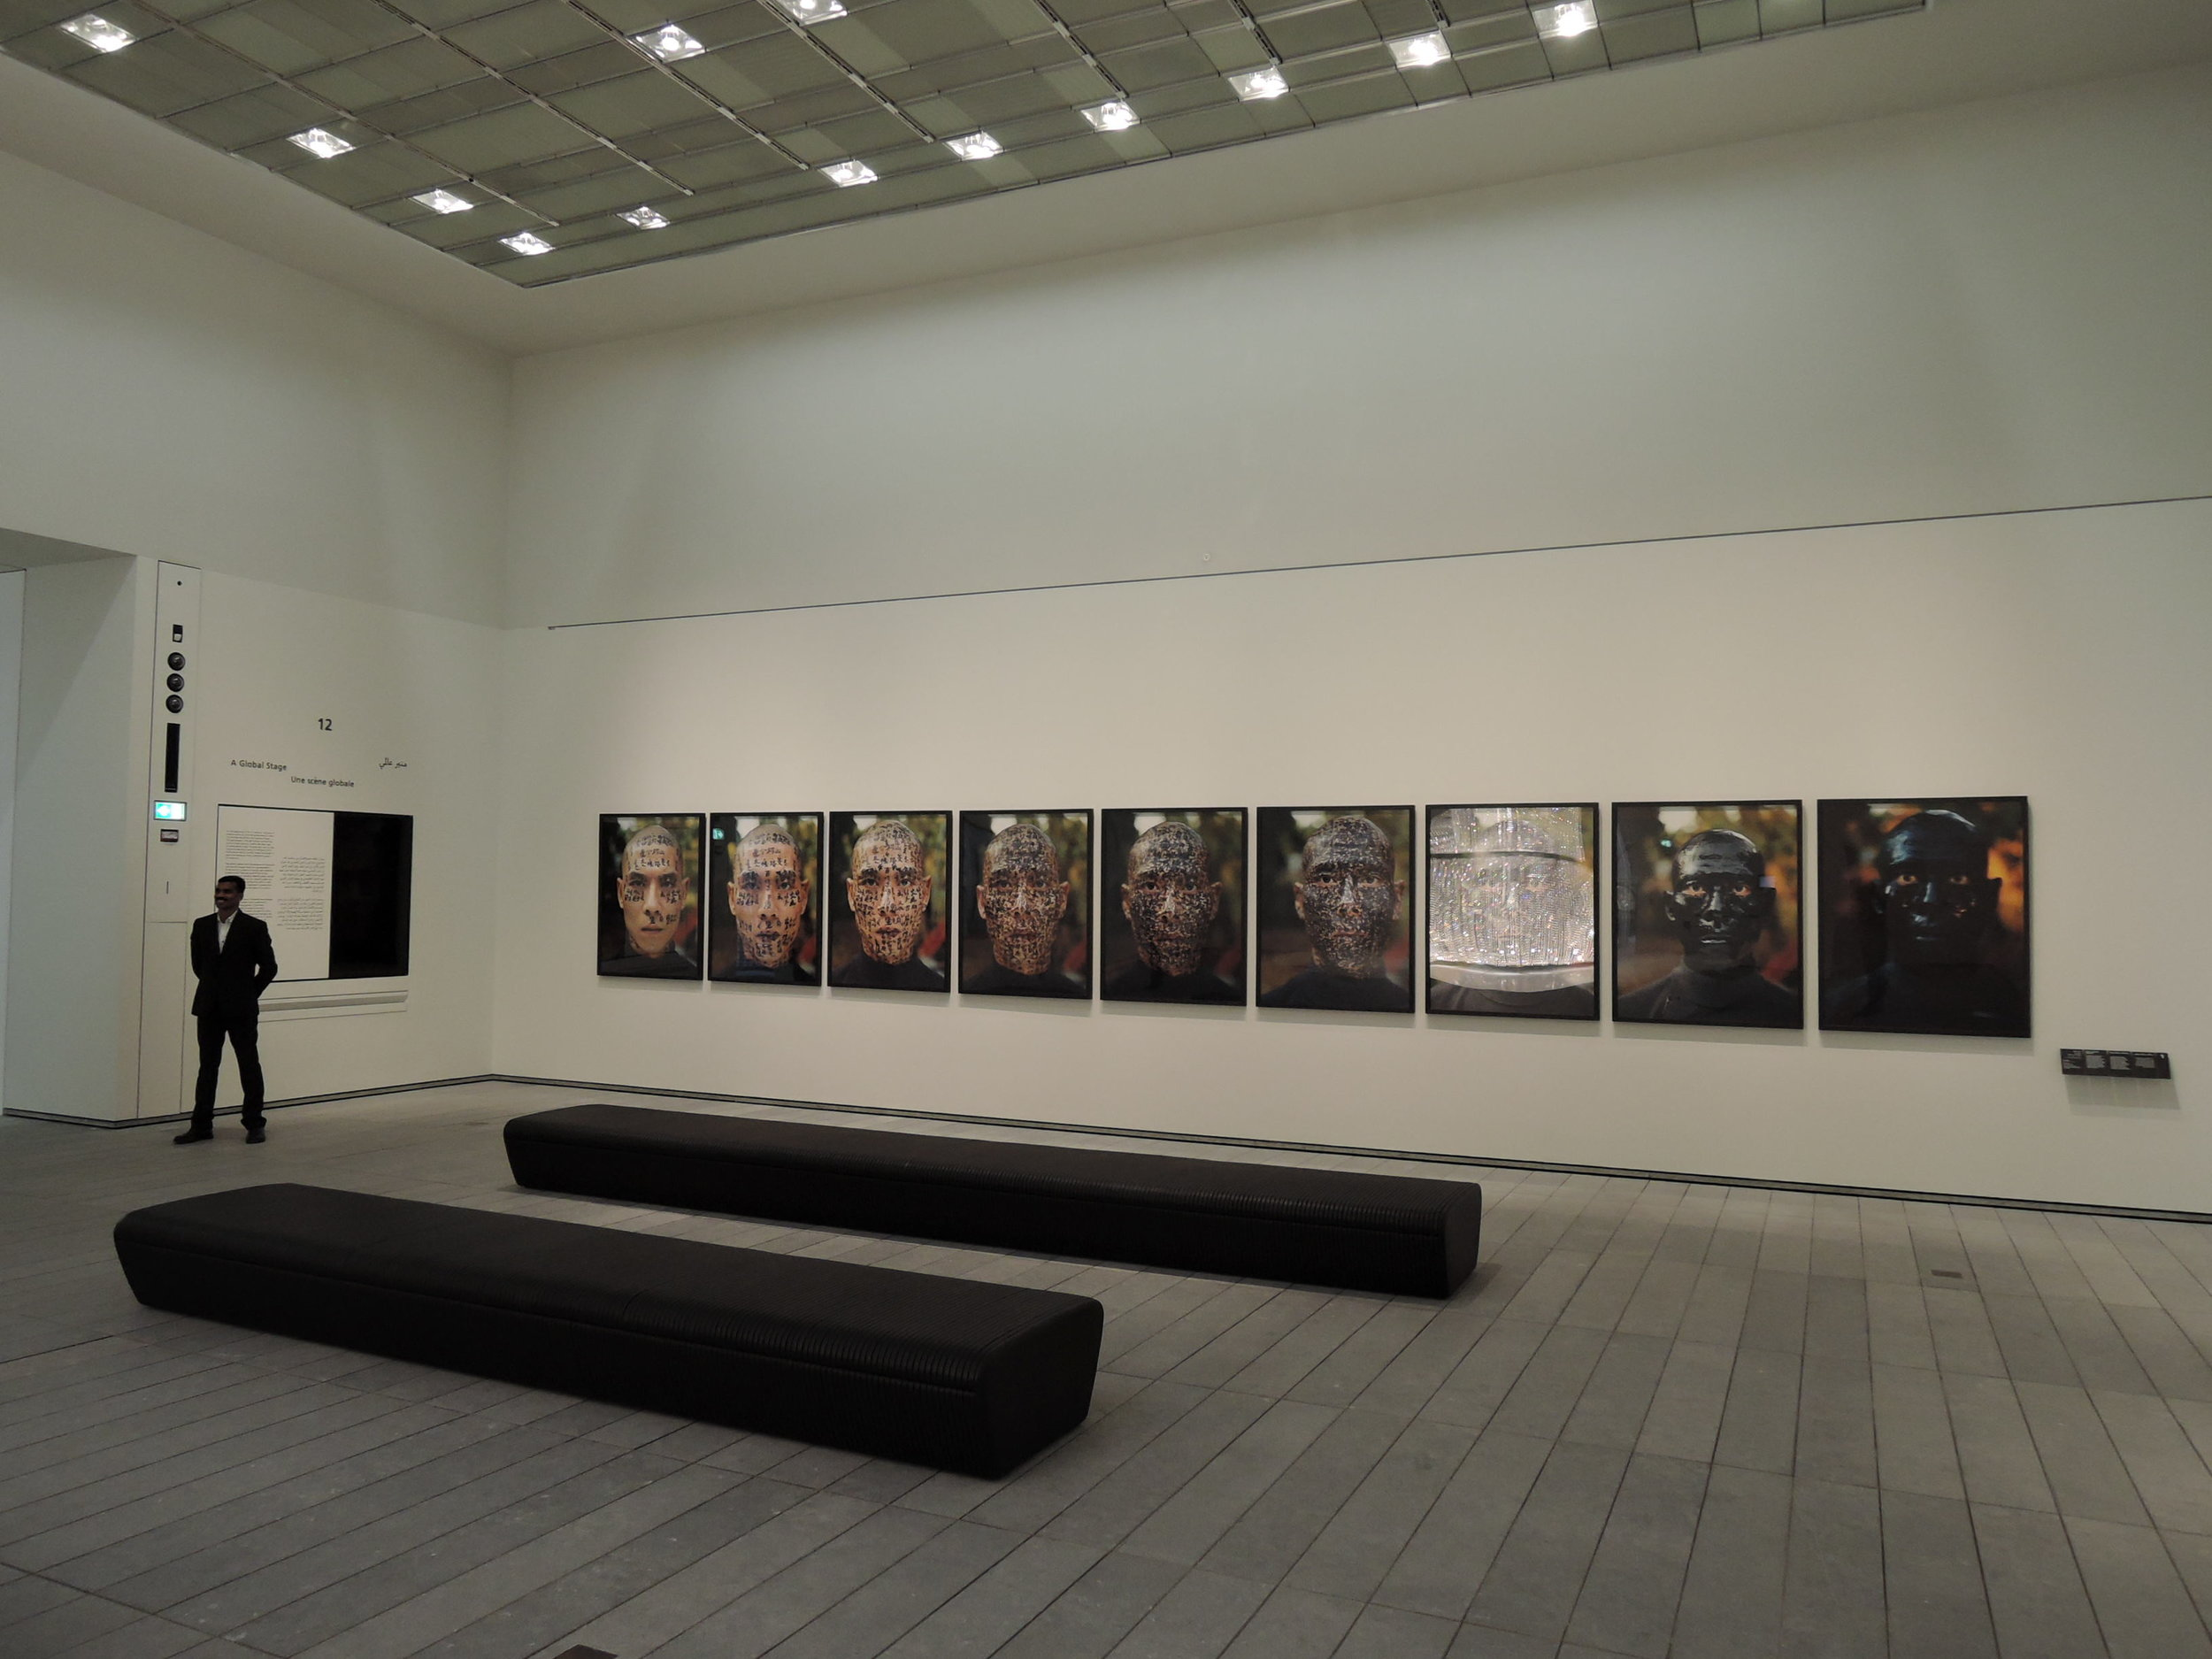 A global stage  , Louvre Abu Dhabi, November 2017, curator Juliette Singer. Artist in view Zang Huan